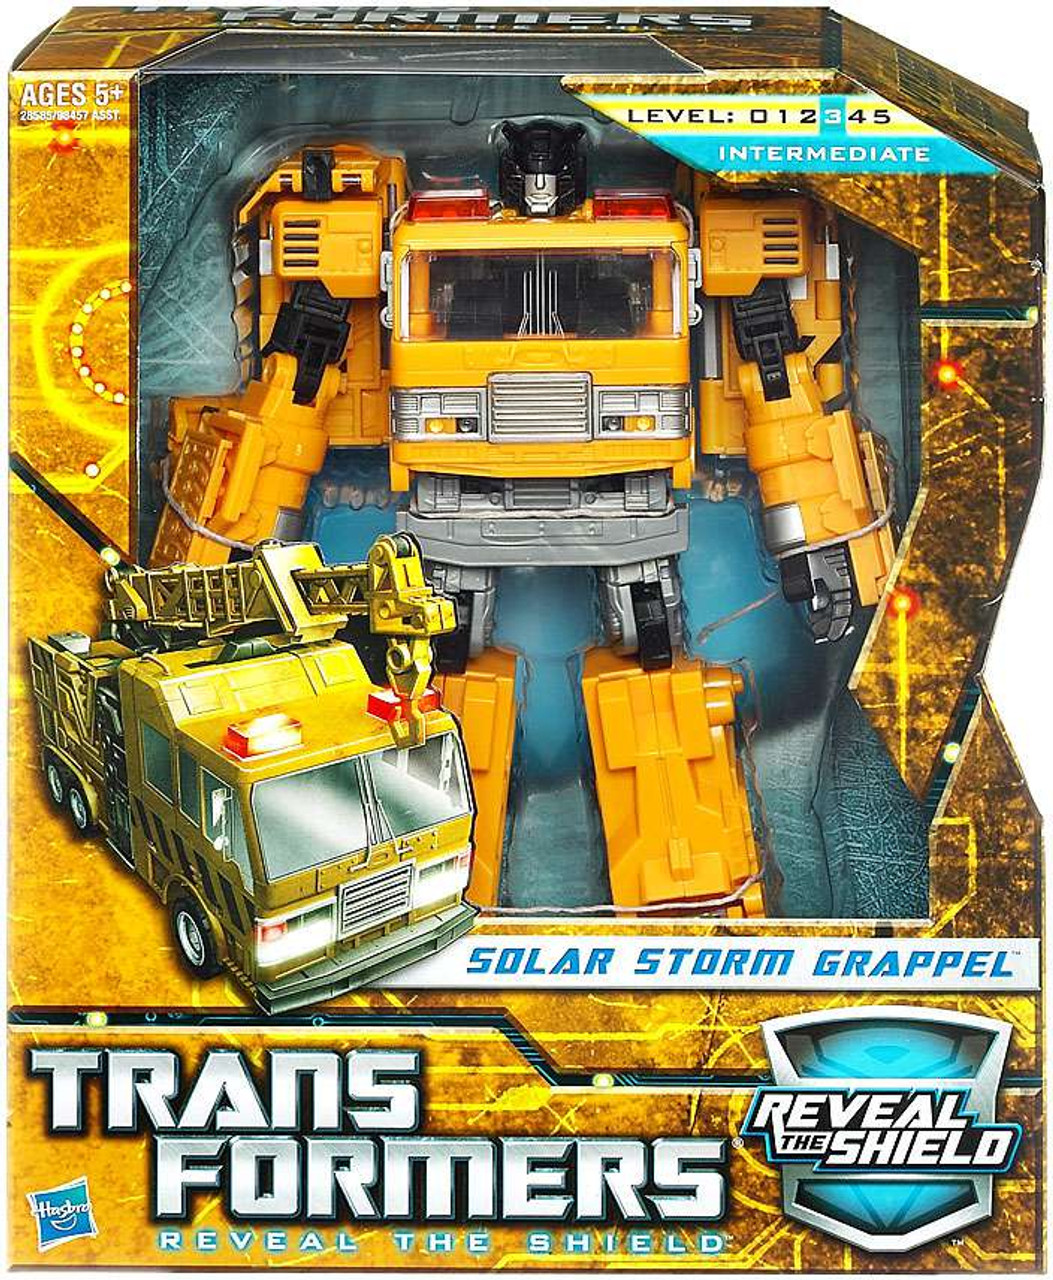 Transformers Reveal the Shield Hunt for the Decepticons Solar Storm Grappel Voyager Action Figure